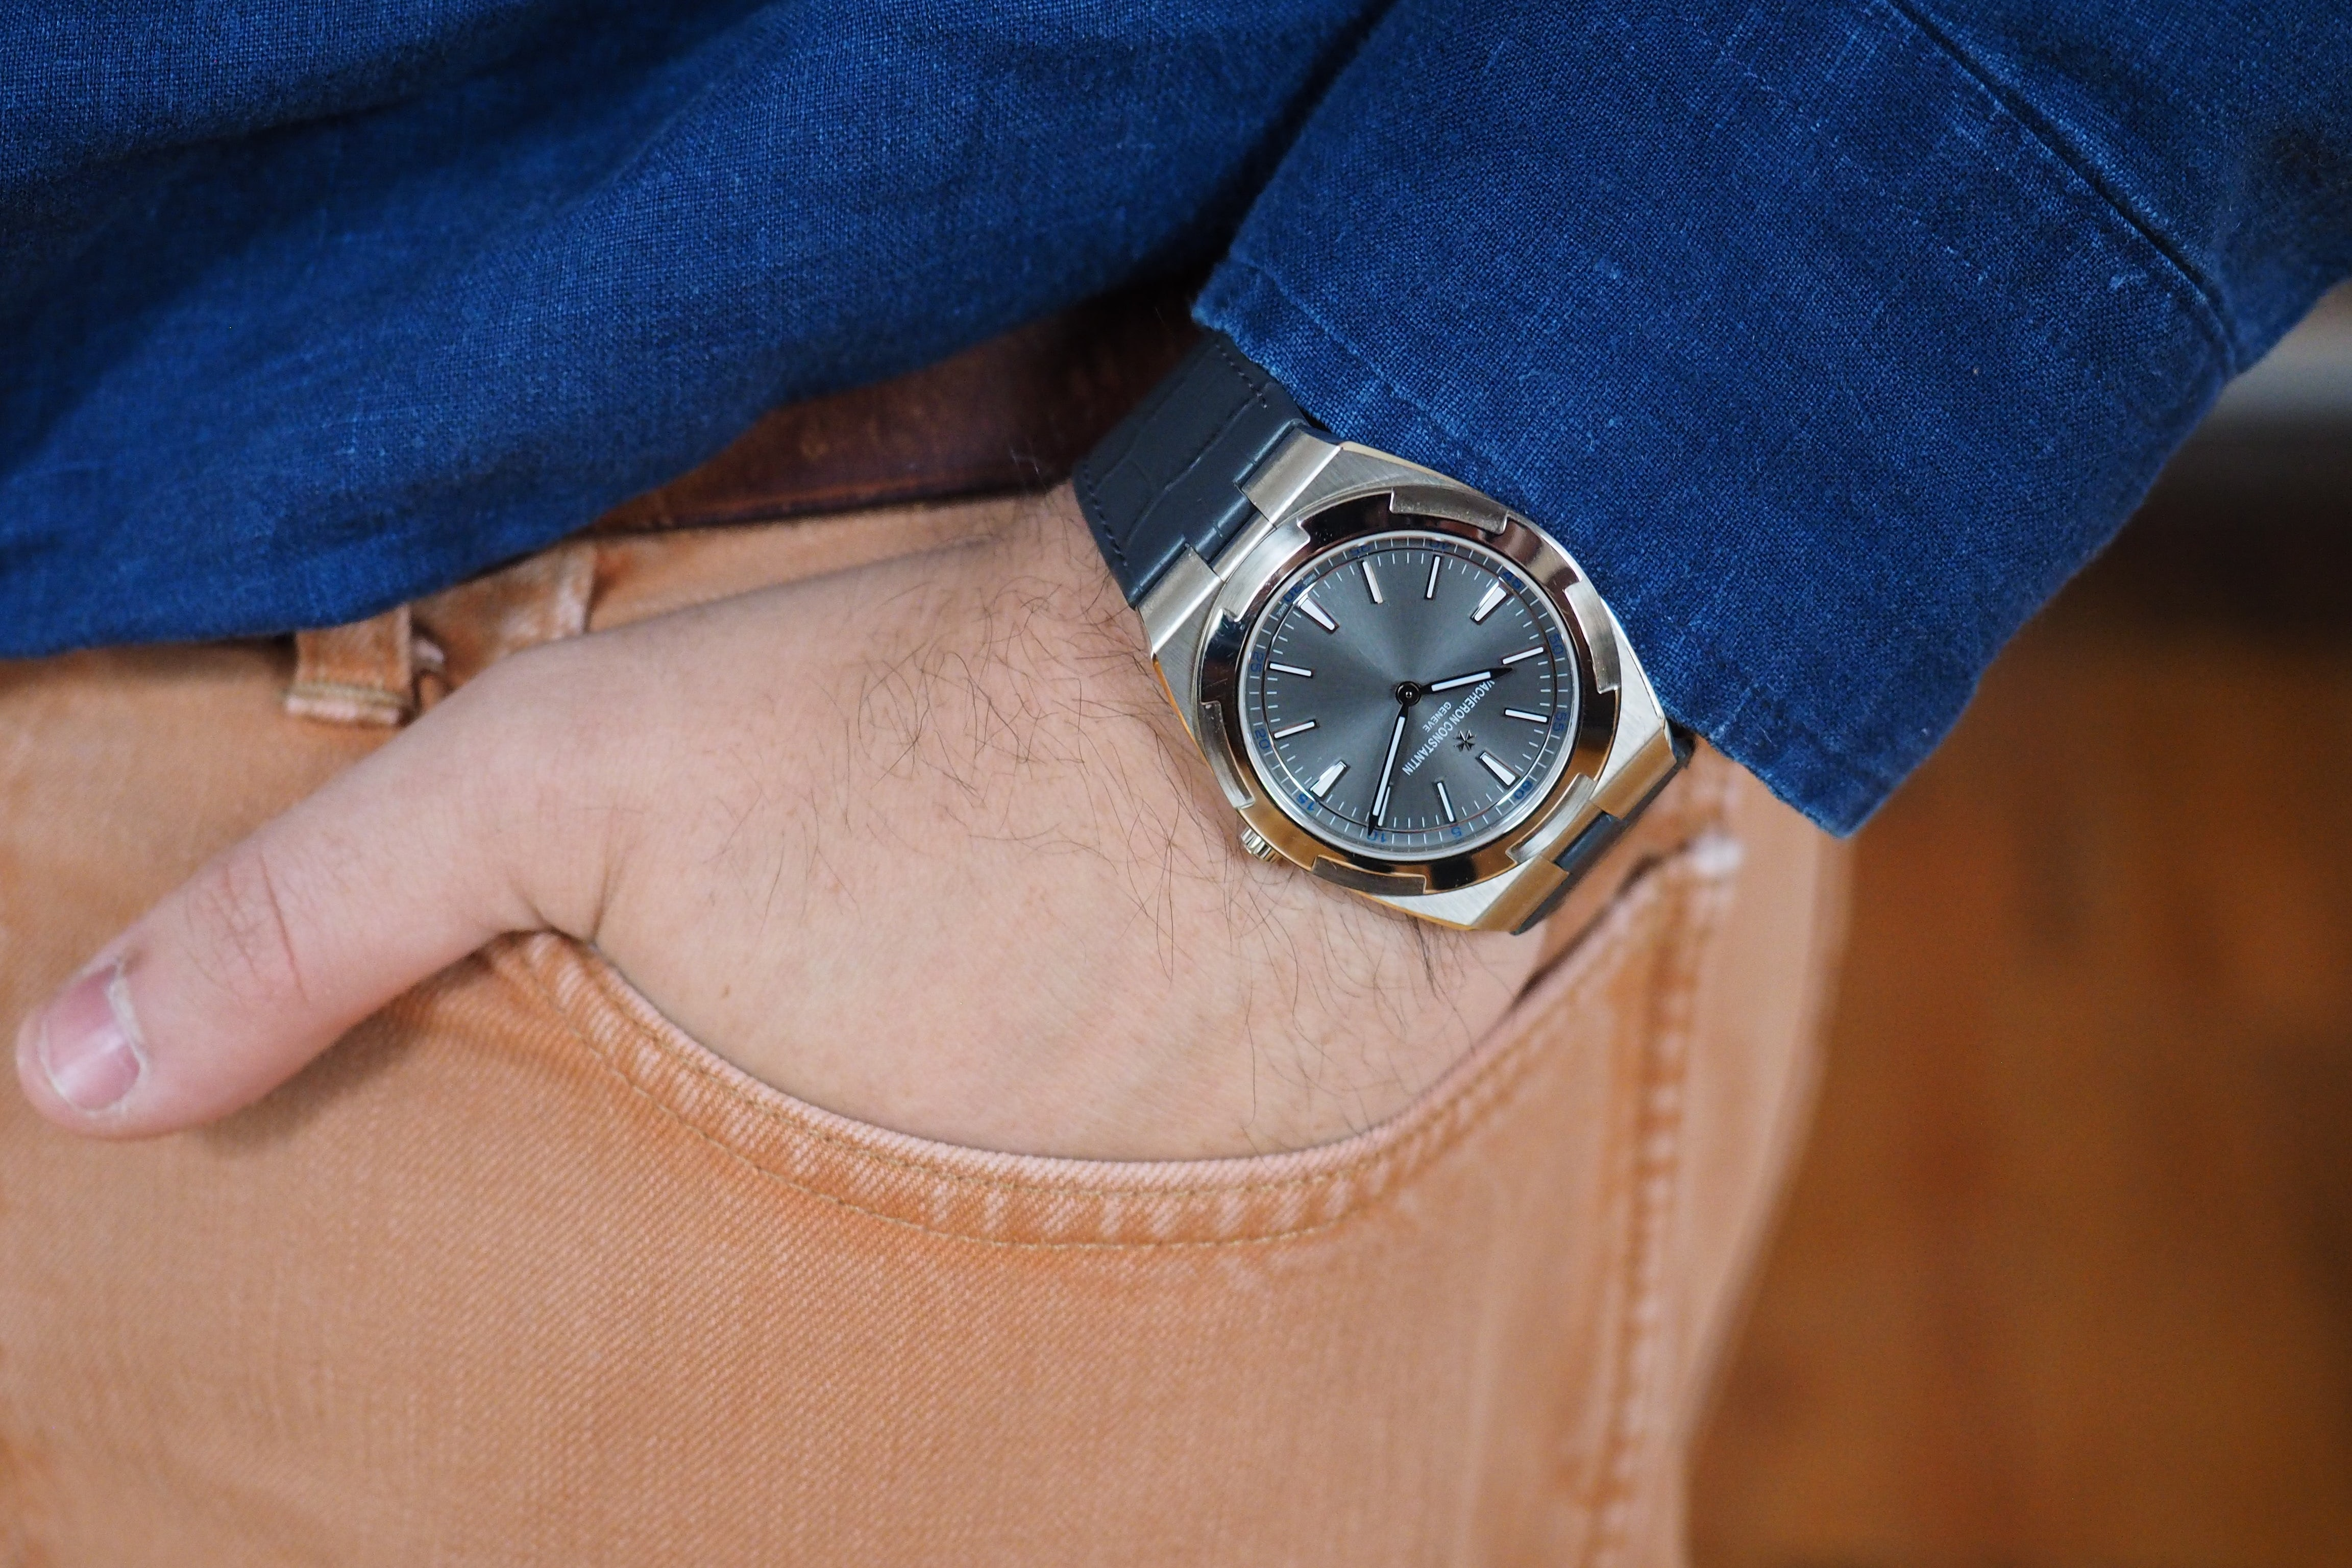 A Week On The Wrist: Ten Of The Biggest, Baddest HODINKEE Reviews Ever A Week On The Wrist: Ten Of The Biggest, Baddest HODINKEE Reviews Ever vc